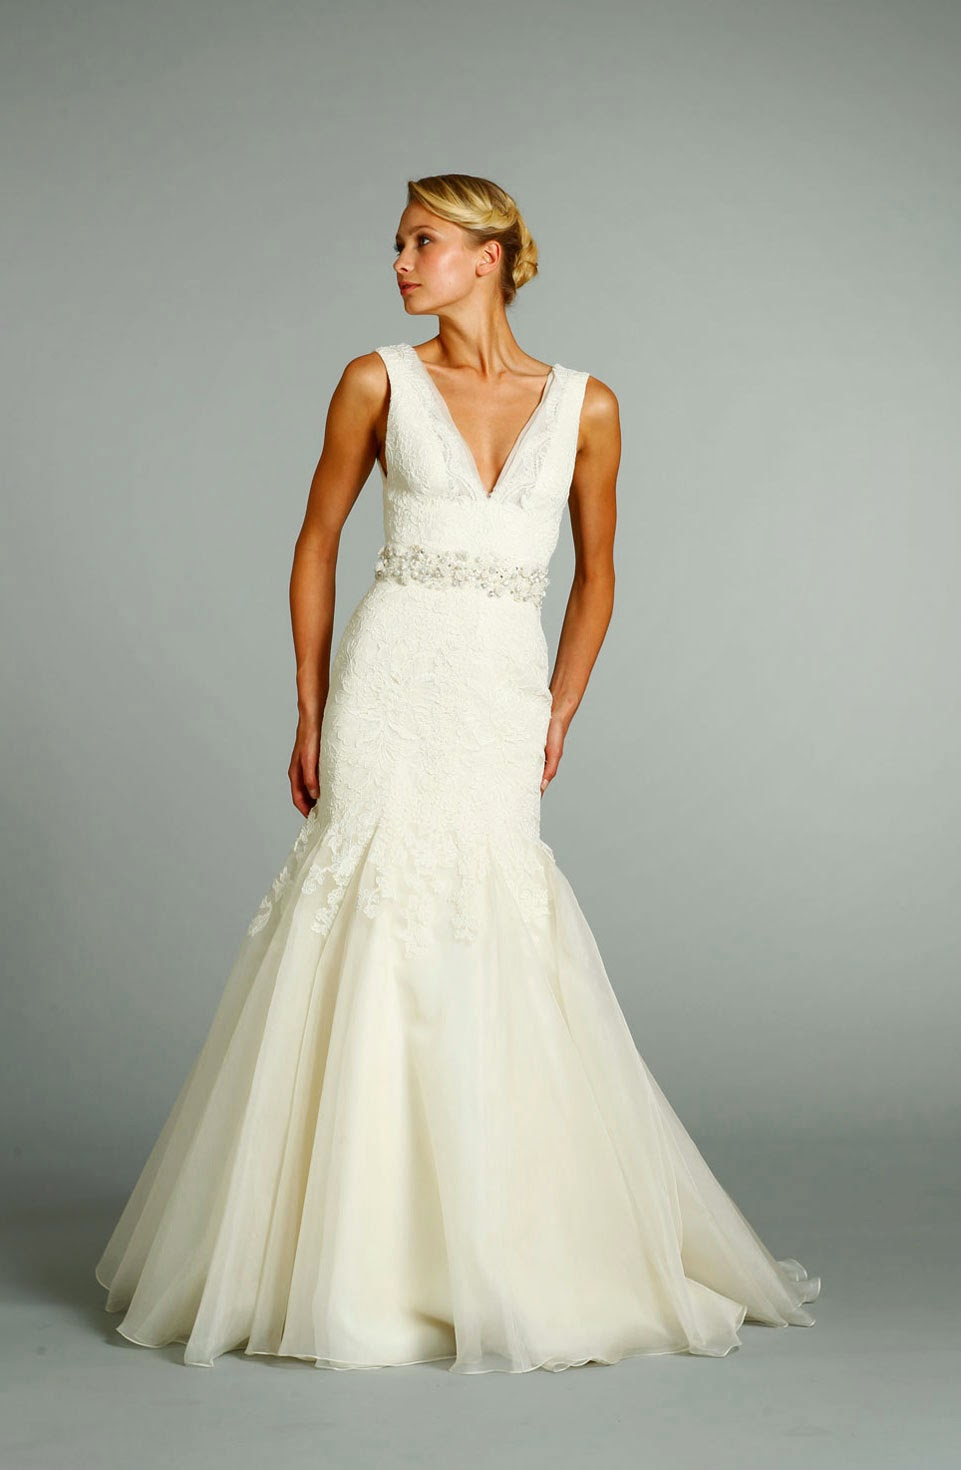 Simple elegant wedding dresses cheap for Elegant wedding party dresses